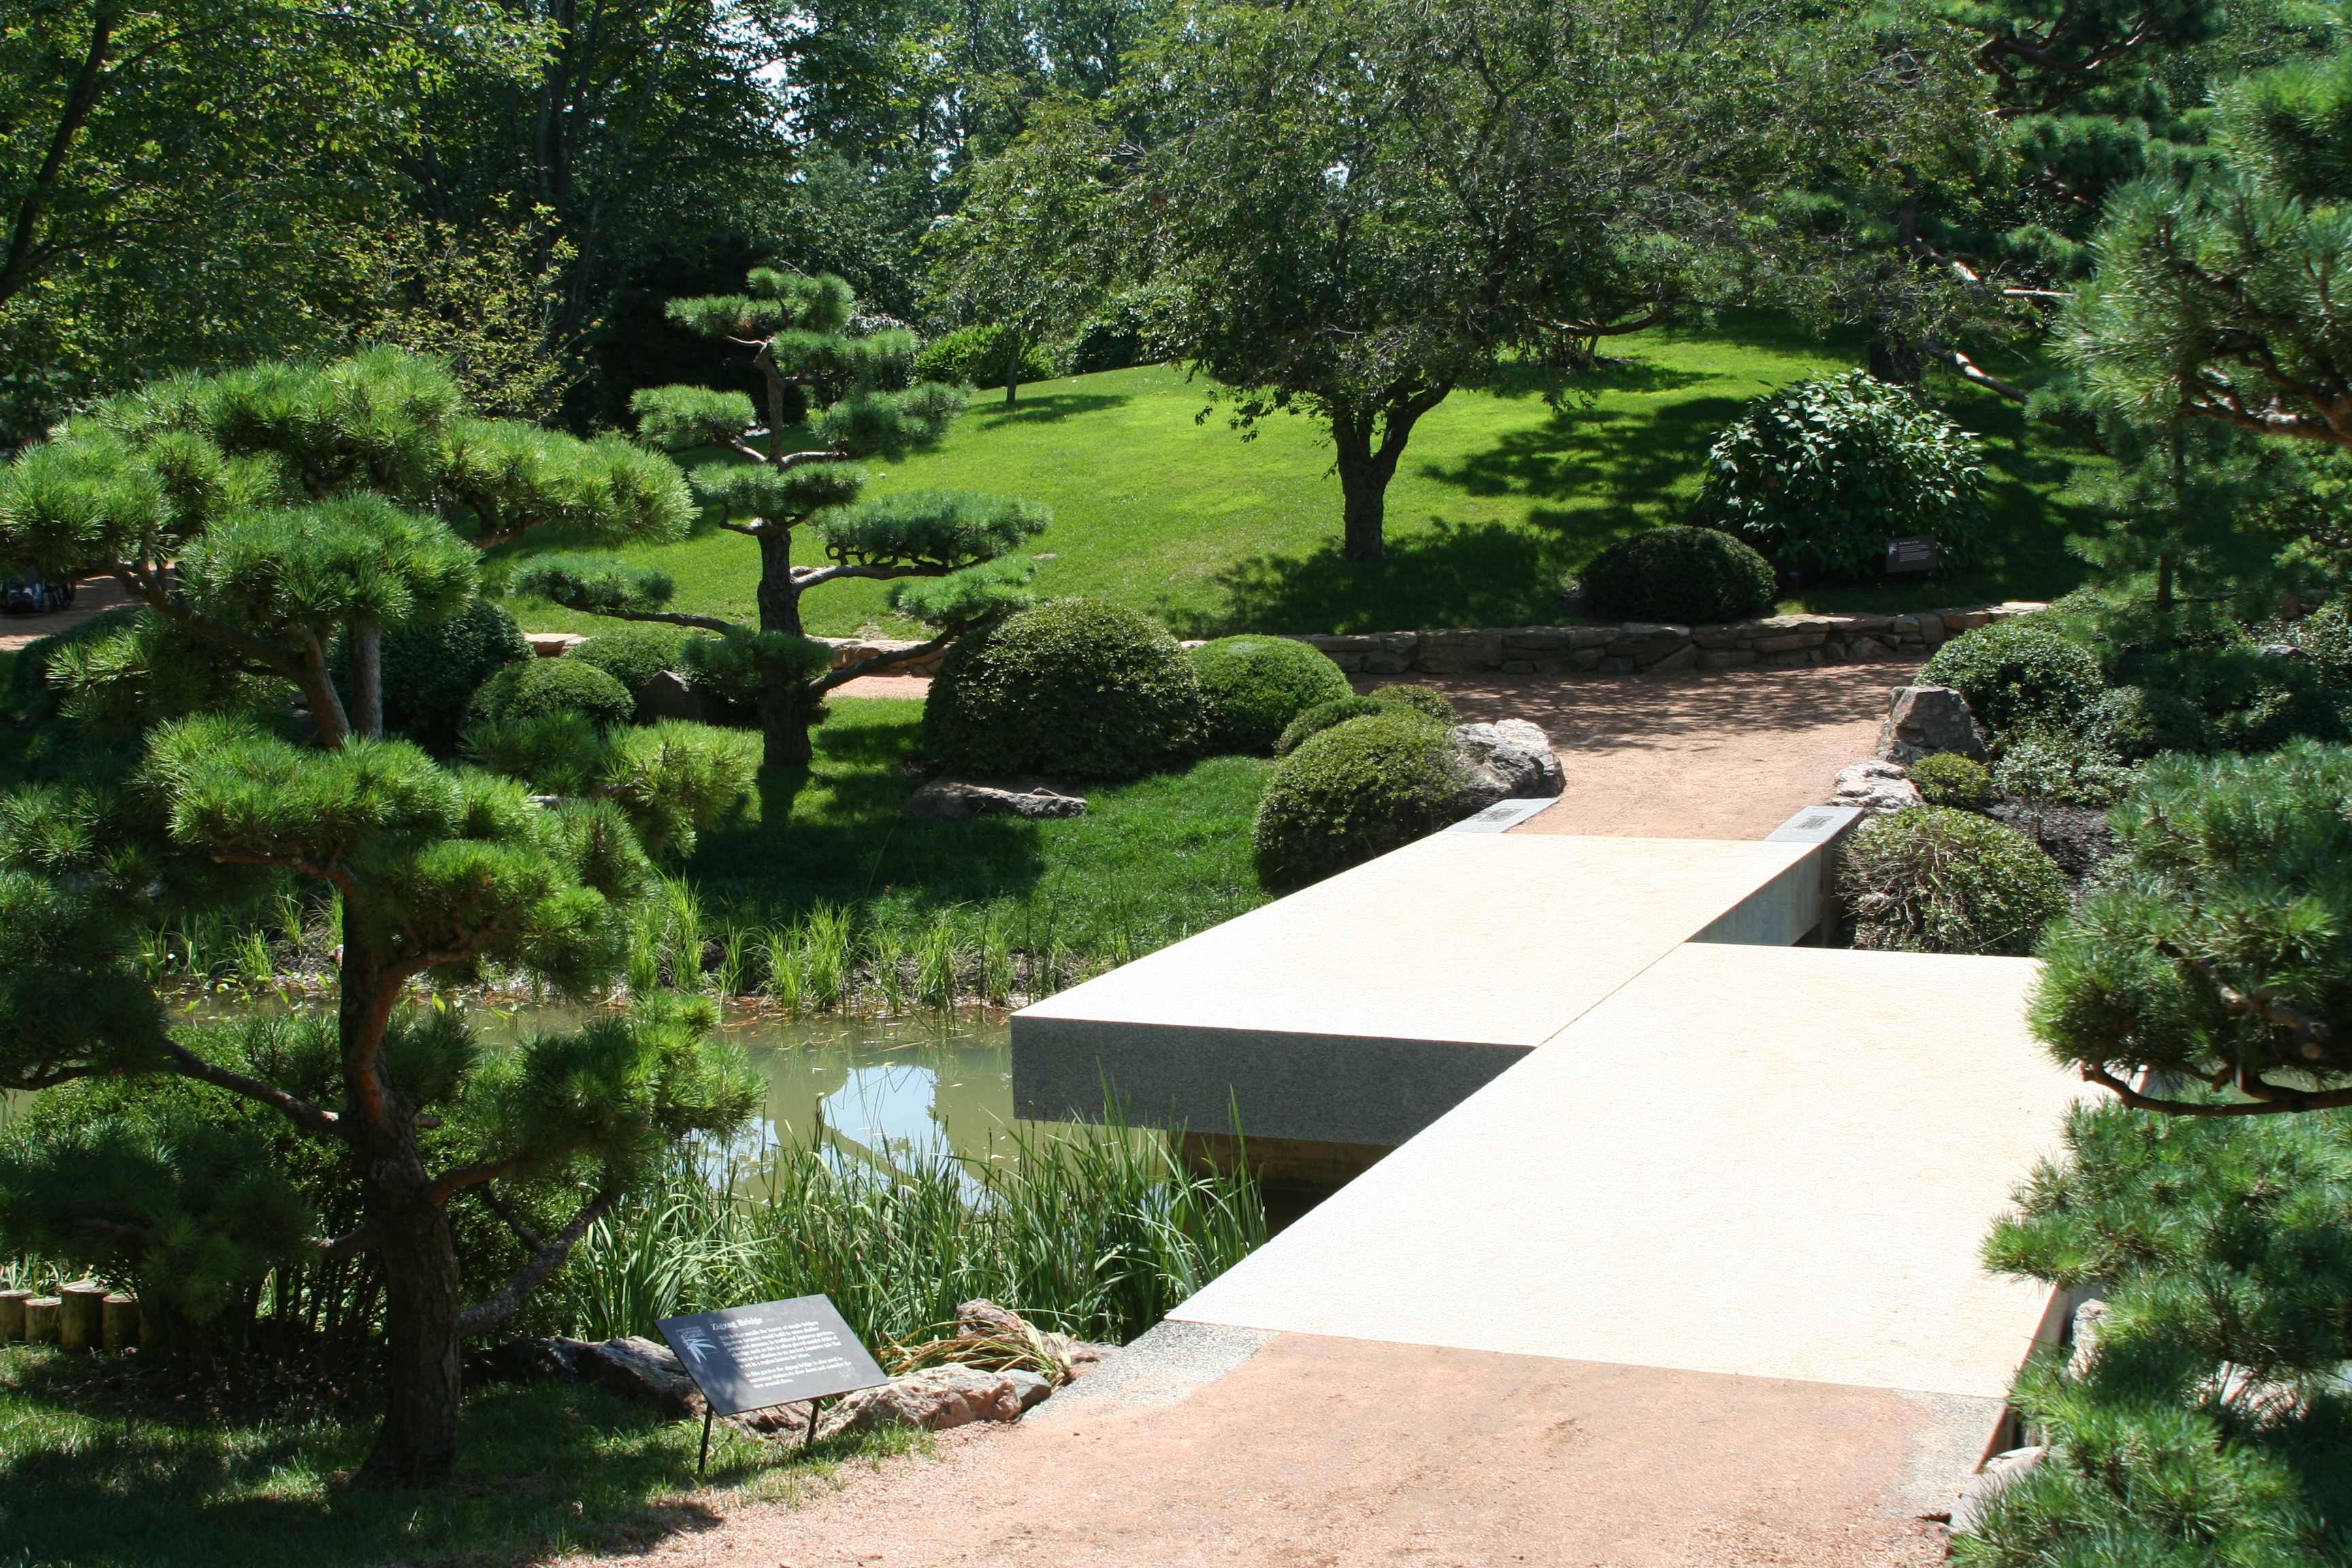 File:chicago botanic garden - zig zag bridge